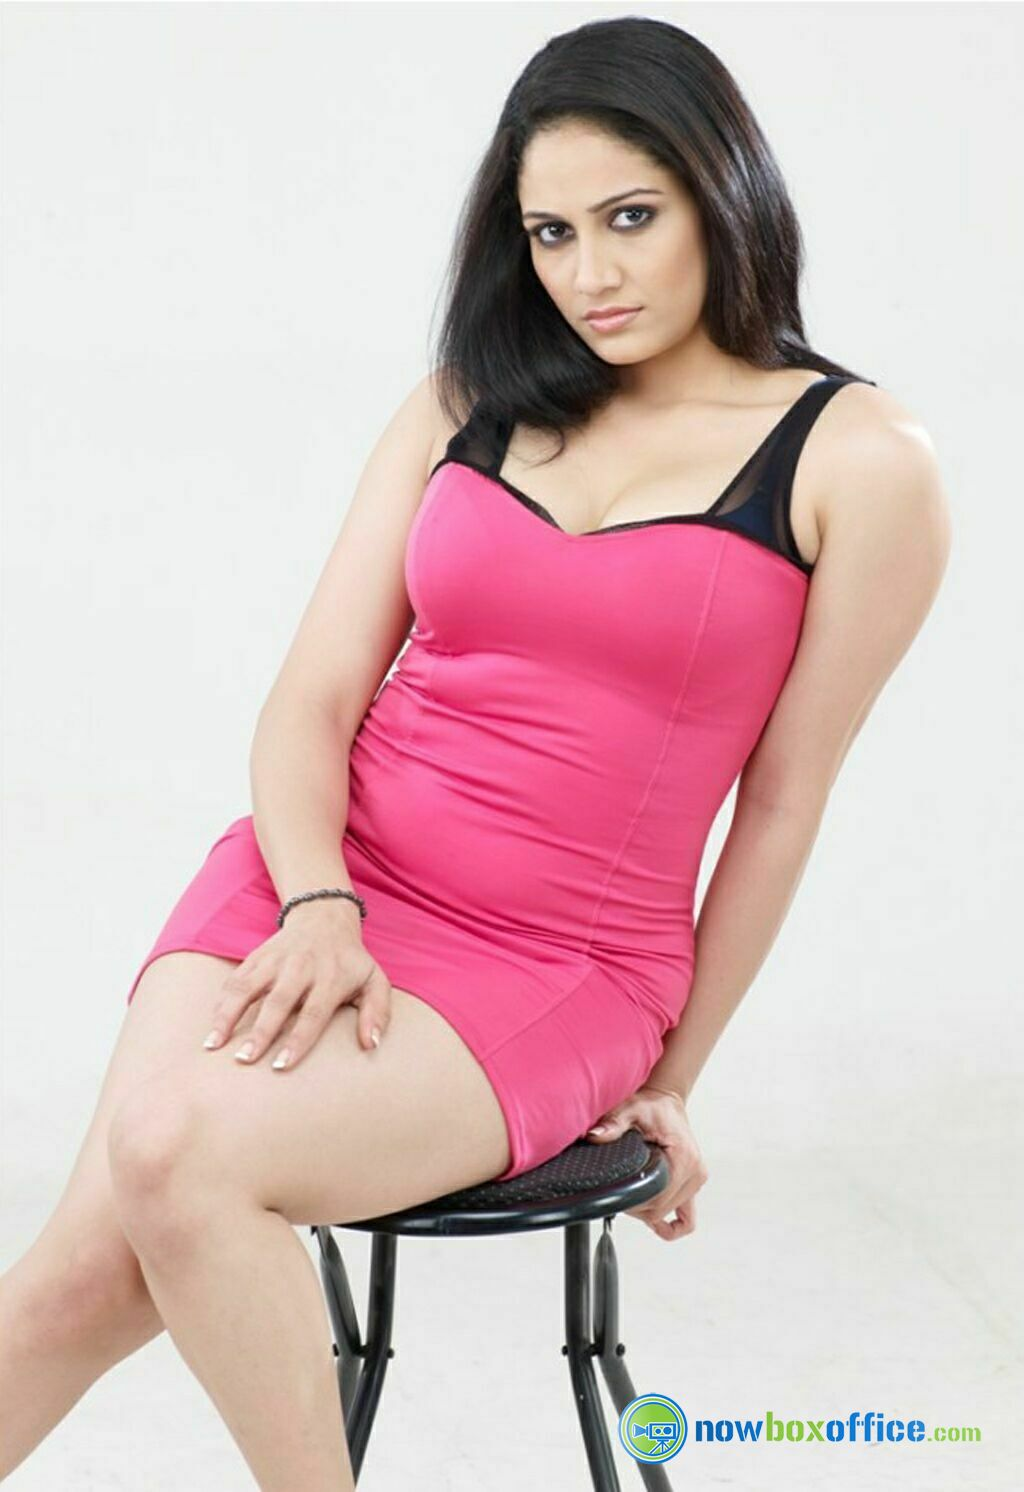 komal sharma new stills komal sharma latest hot photoshoot stills